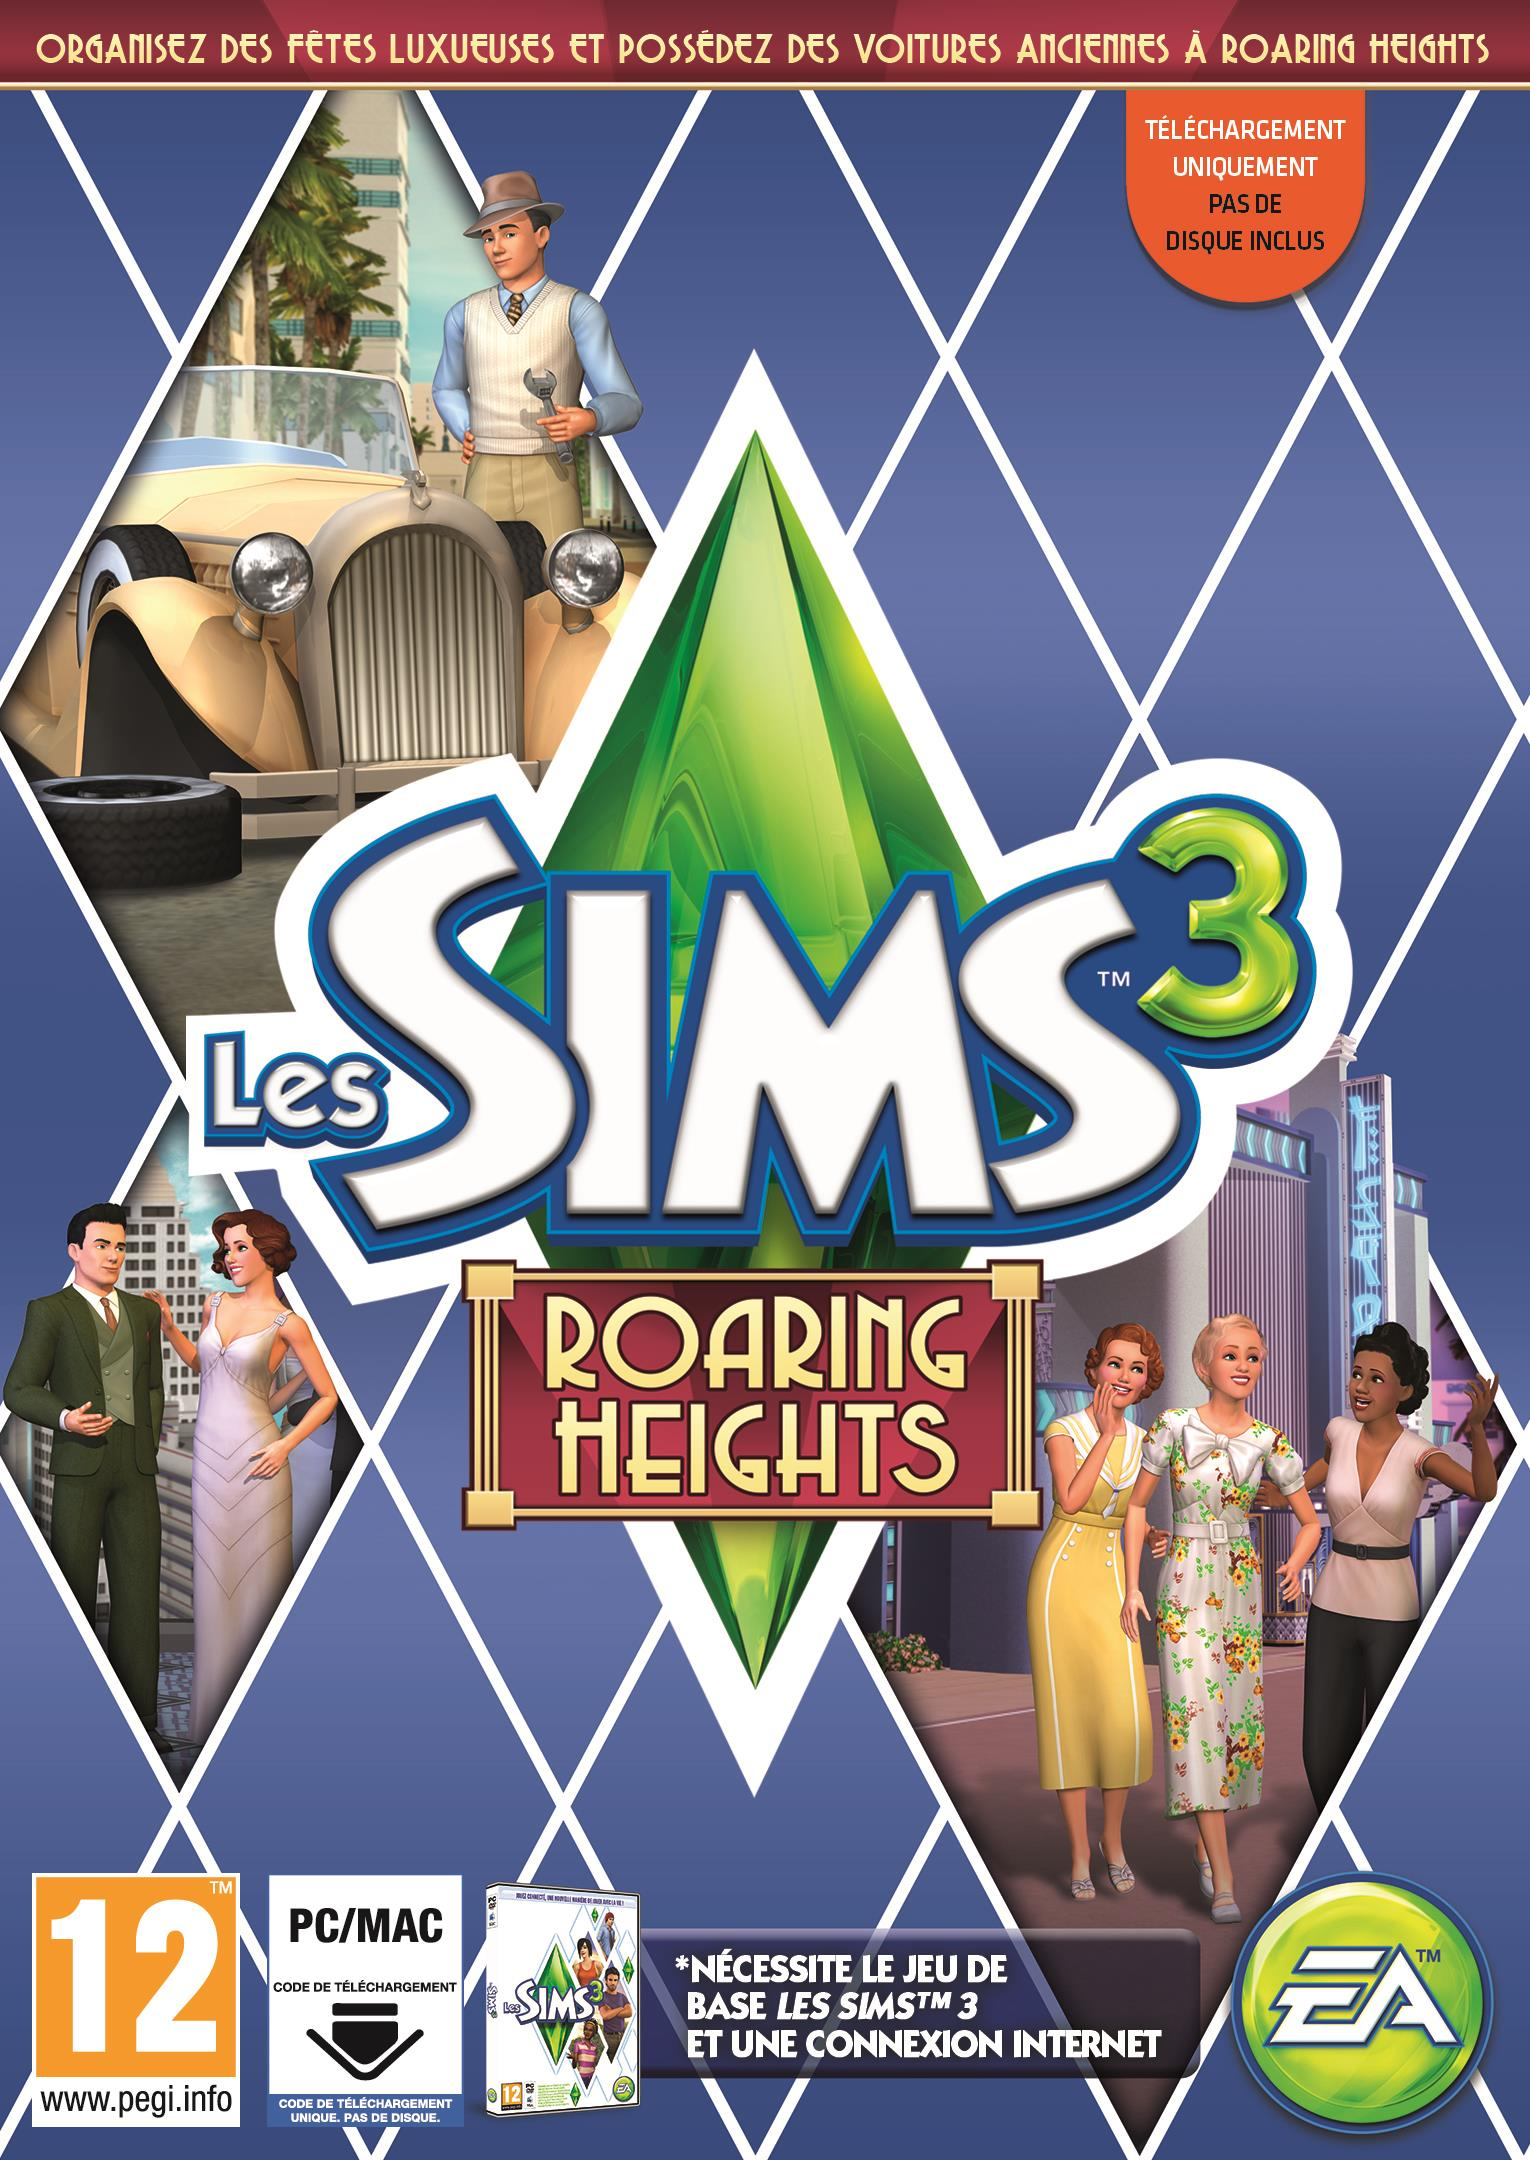 Les Sims 3 Showtime Edition Collector Katy Perry: Les Sims 3: Roaring Heights